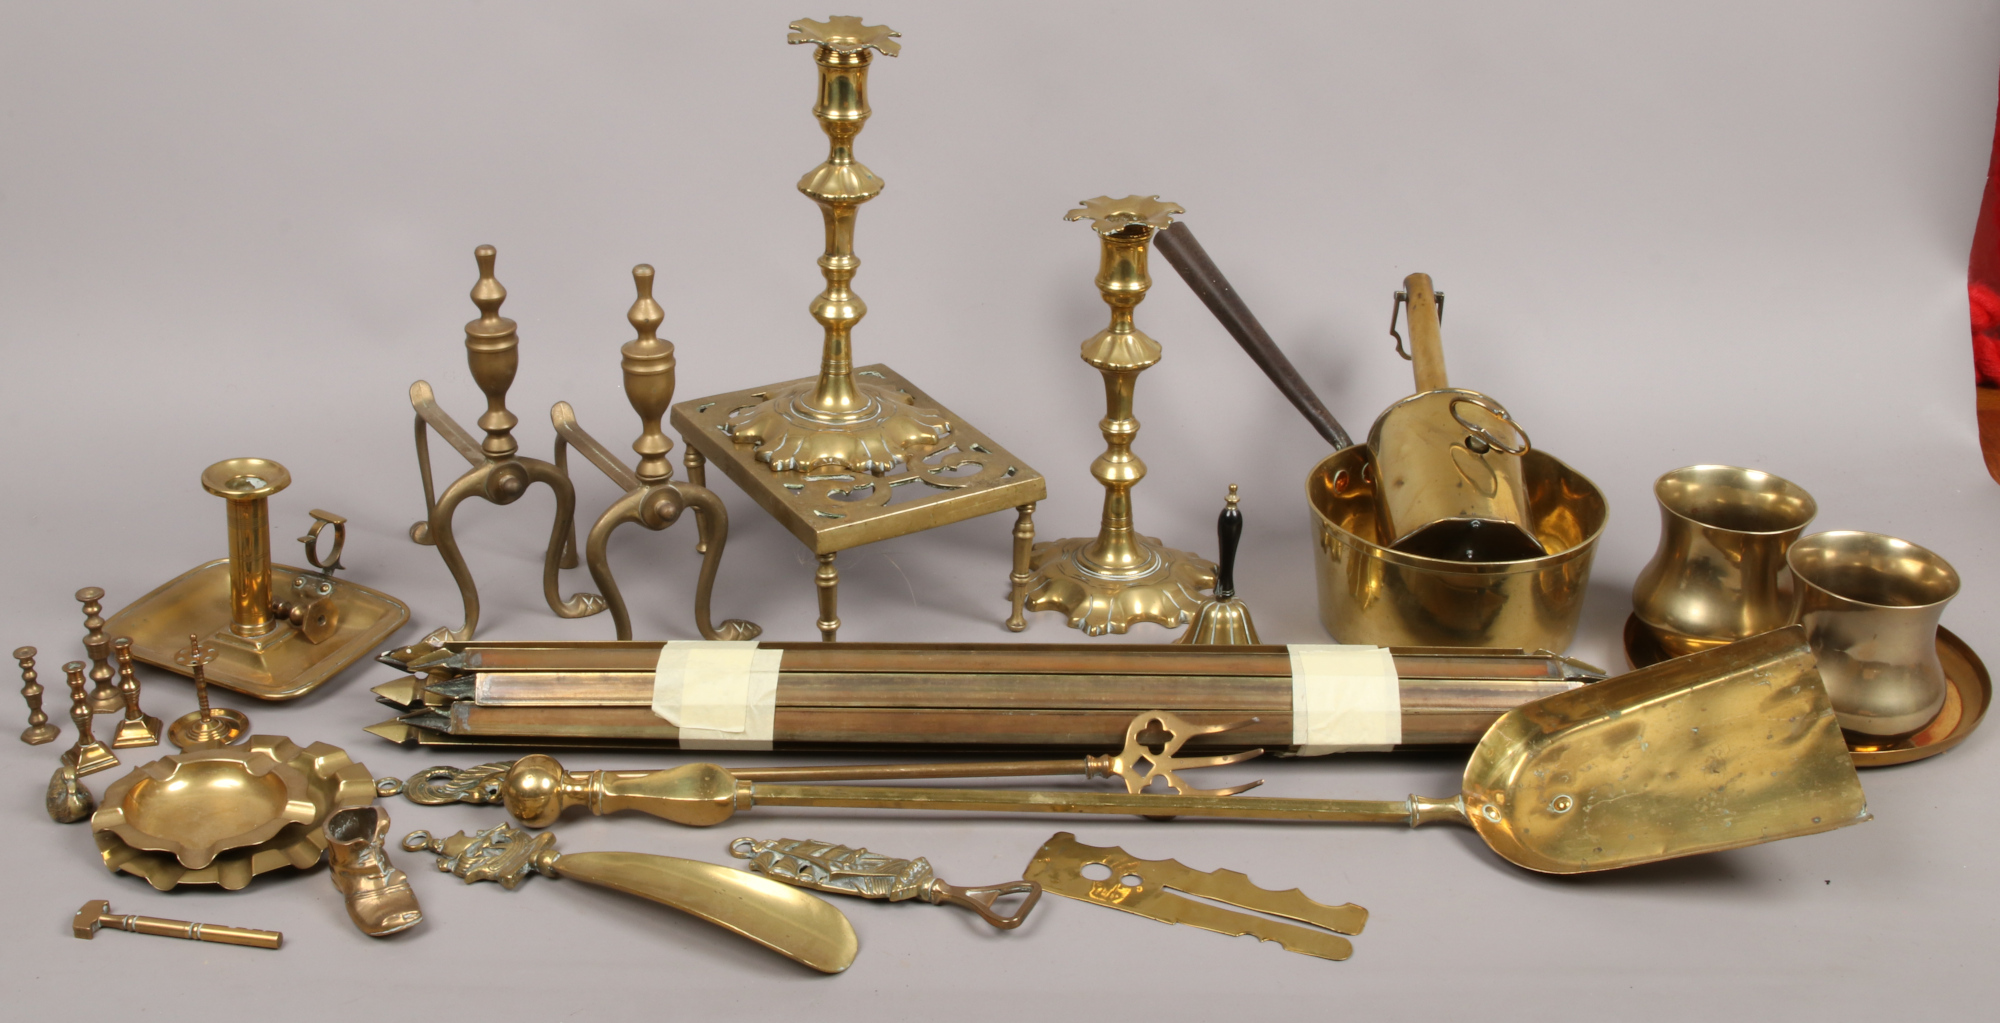 Lot 12 - A collection of brassware to include Spitjack, candlesticks, firedogs, chamber stick and a bundle of